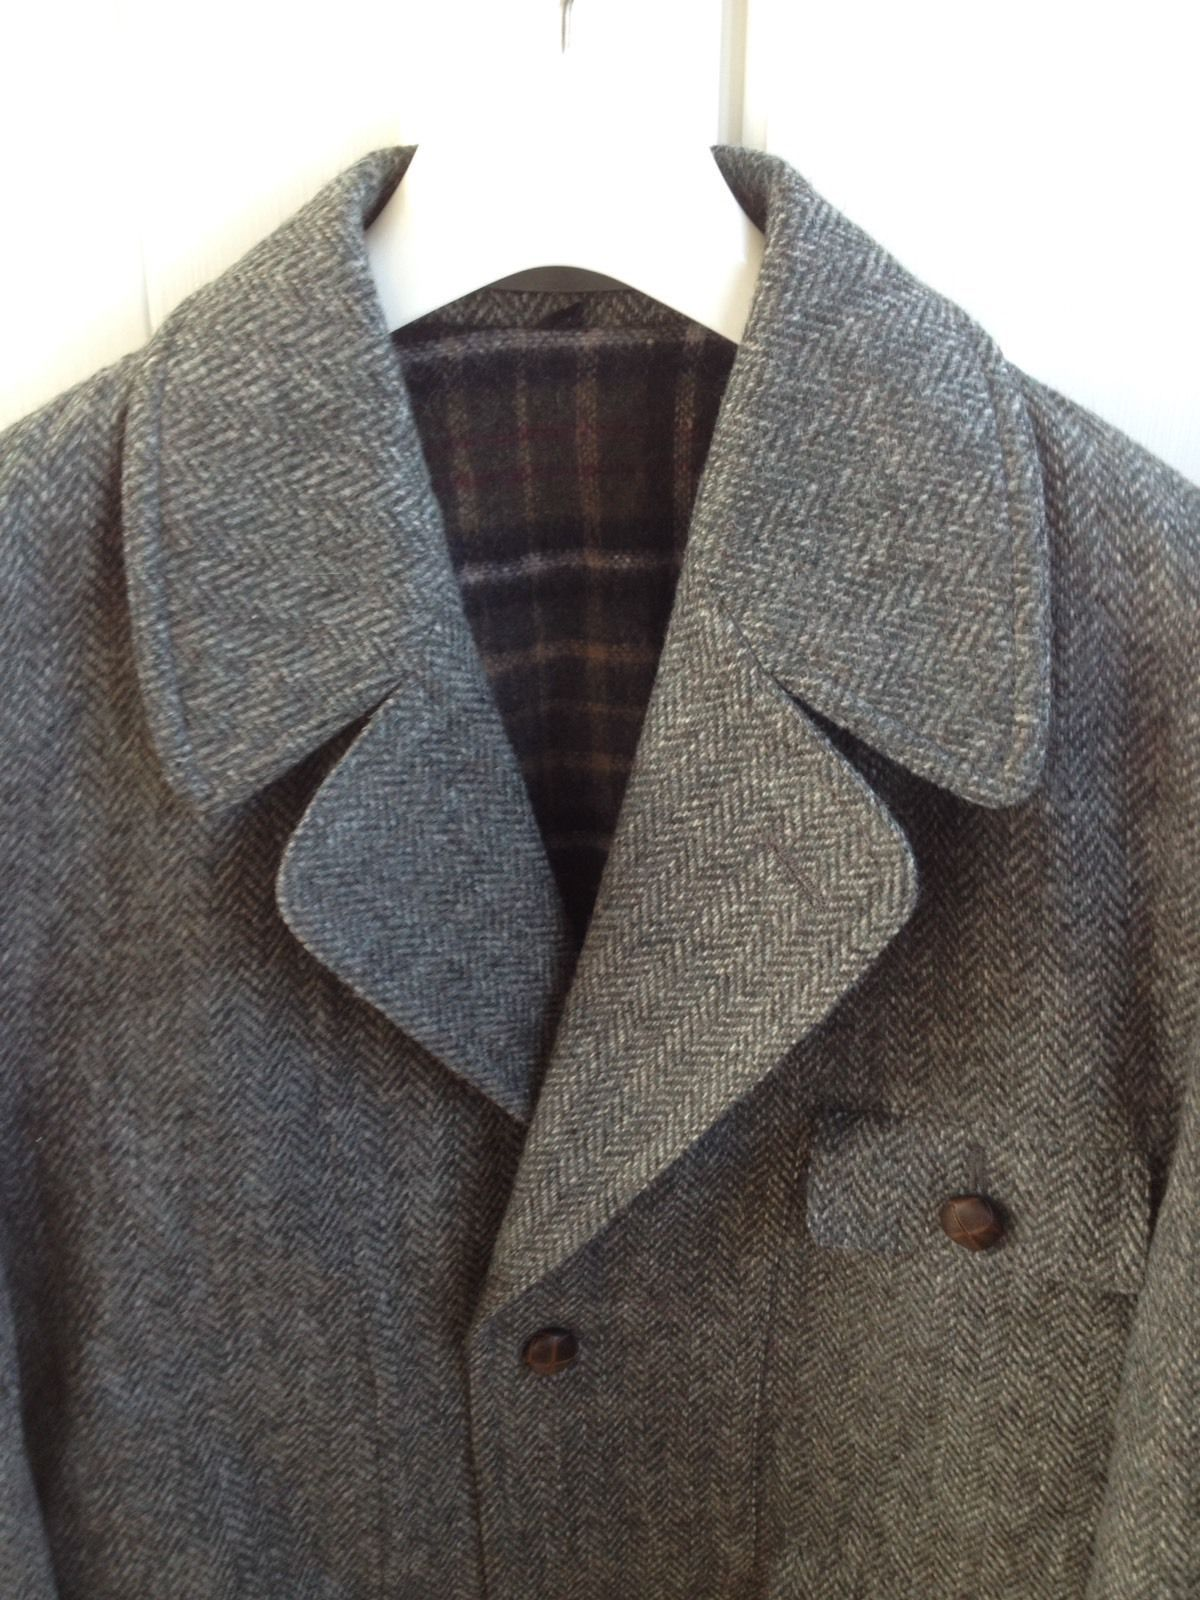 Vintage Austin Reed Wool Tweed Jacket Coat Houndstooth Plaid Lining Men S Xl 44